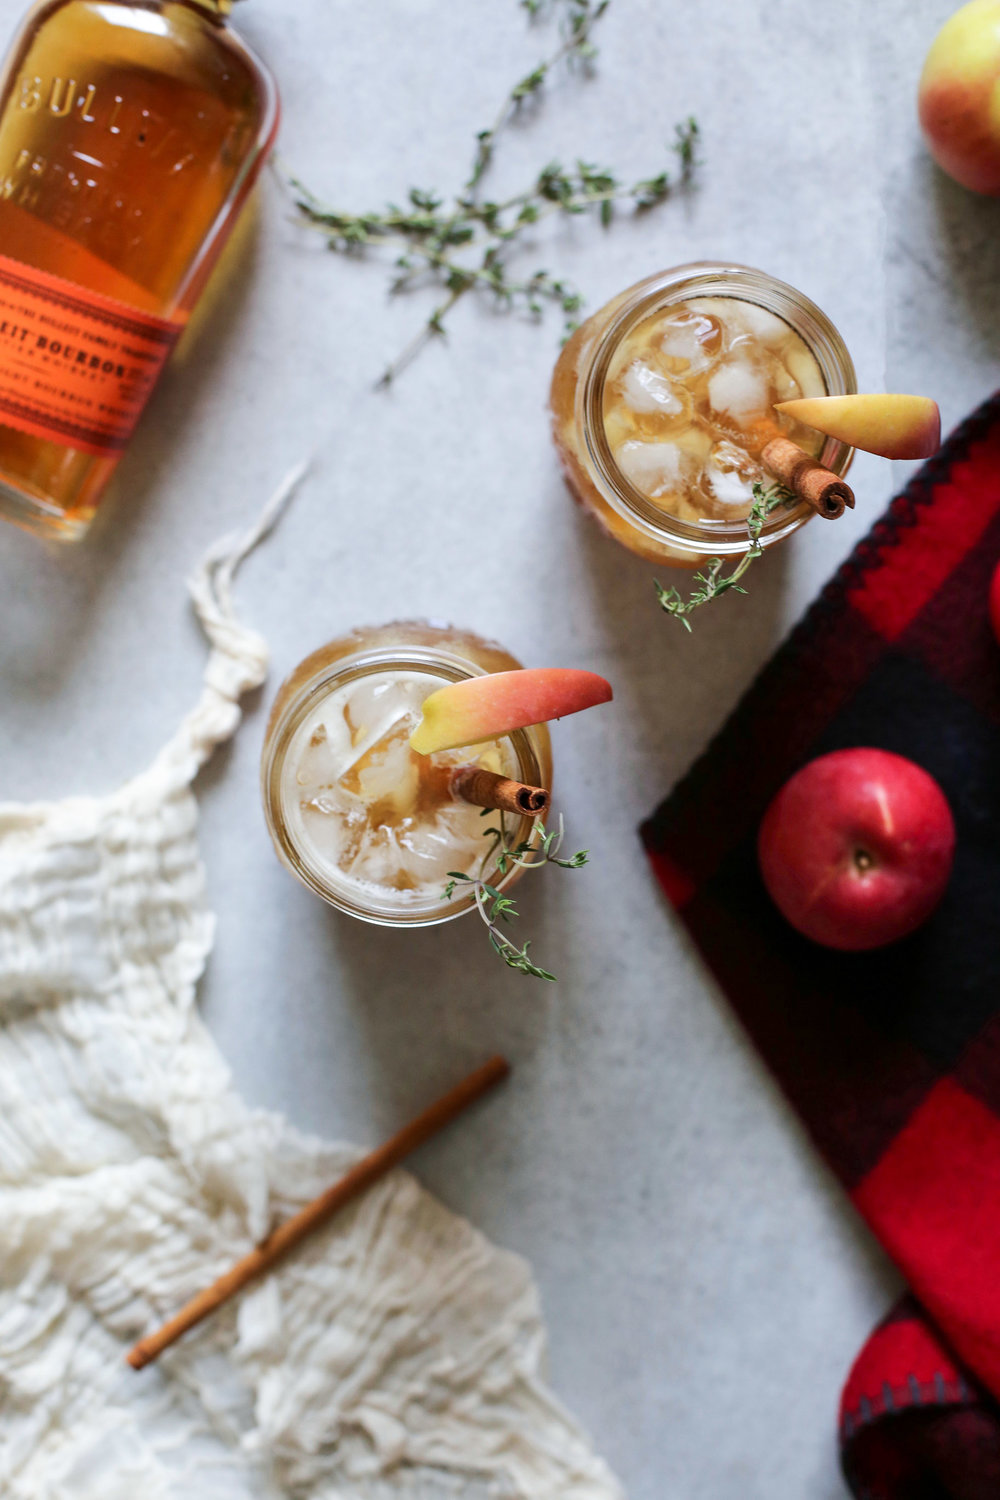 spiked-apple-cider4.jpg